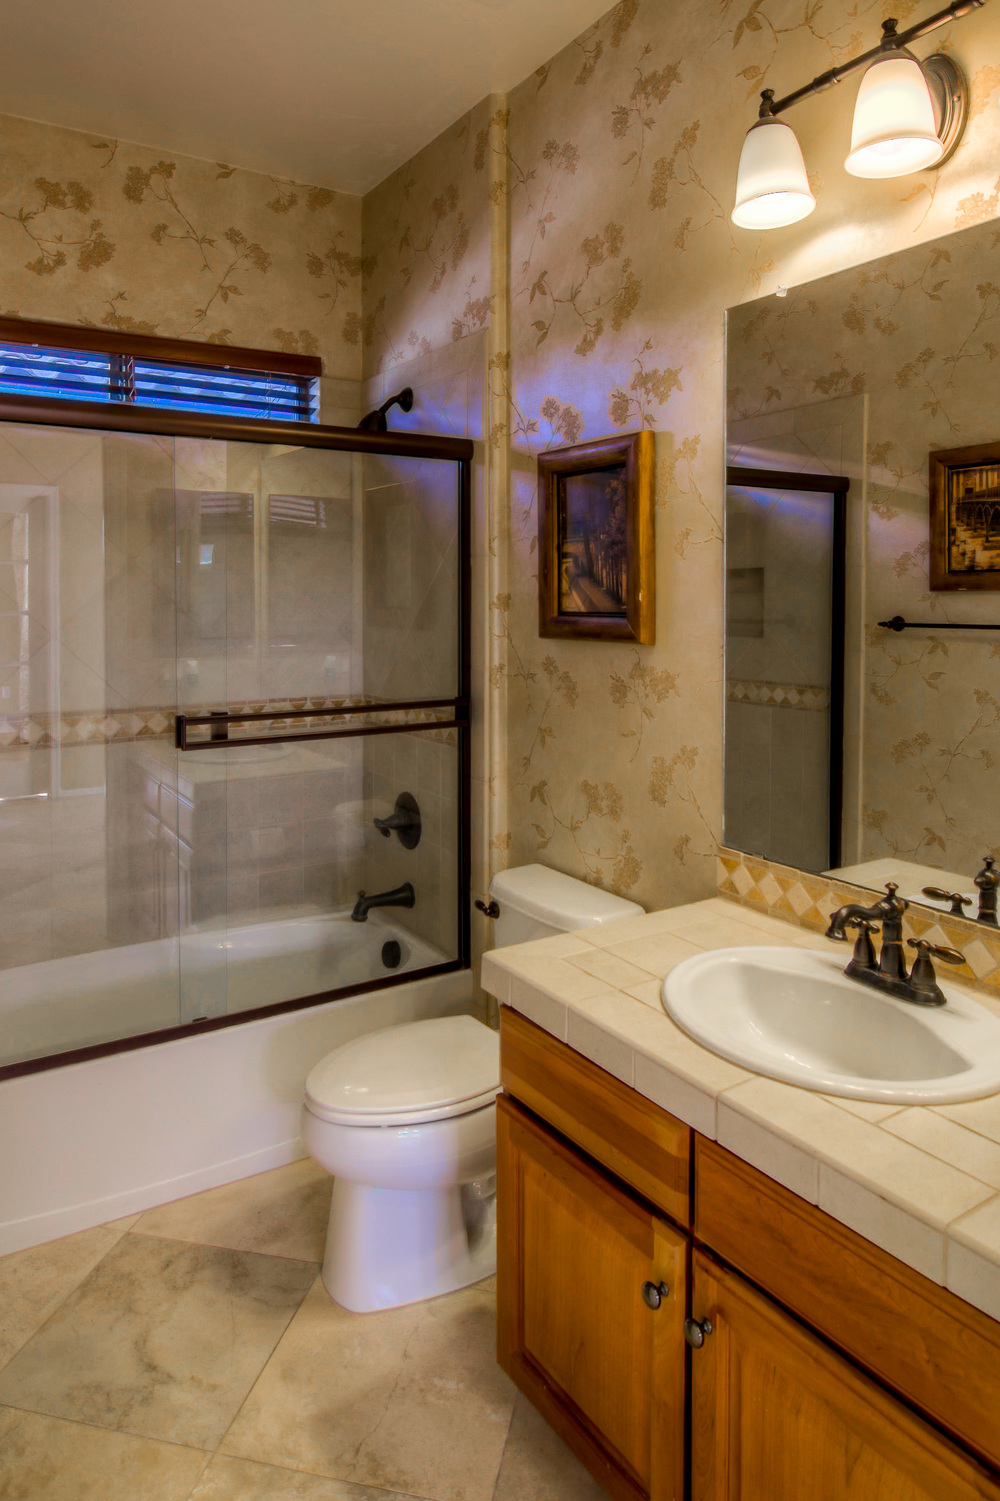 7 Downstairs Bathroom 1.jpg